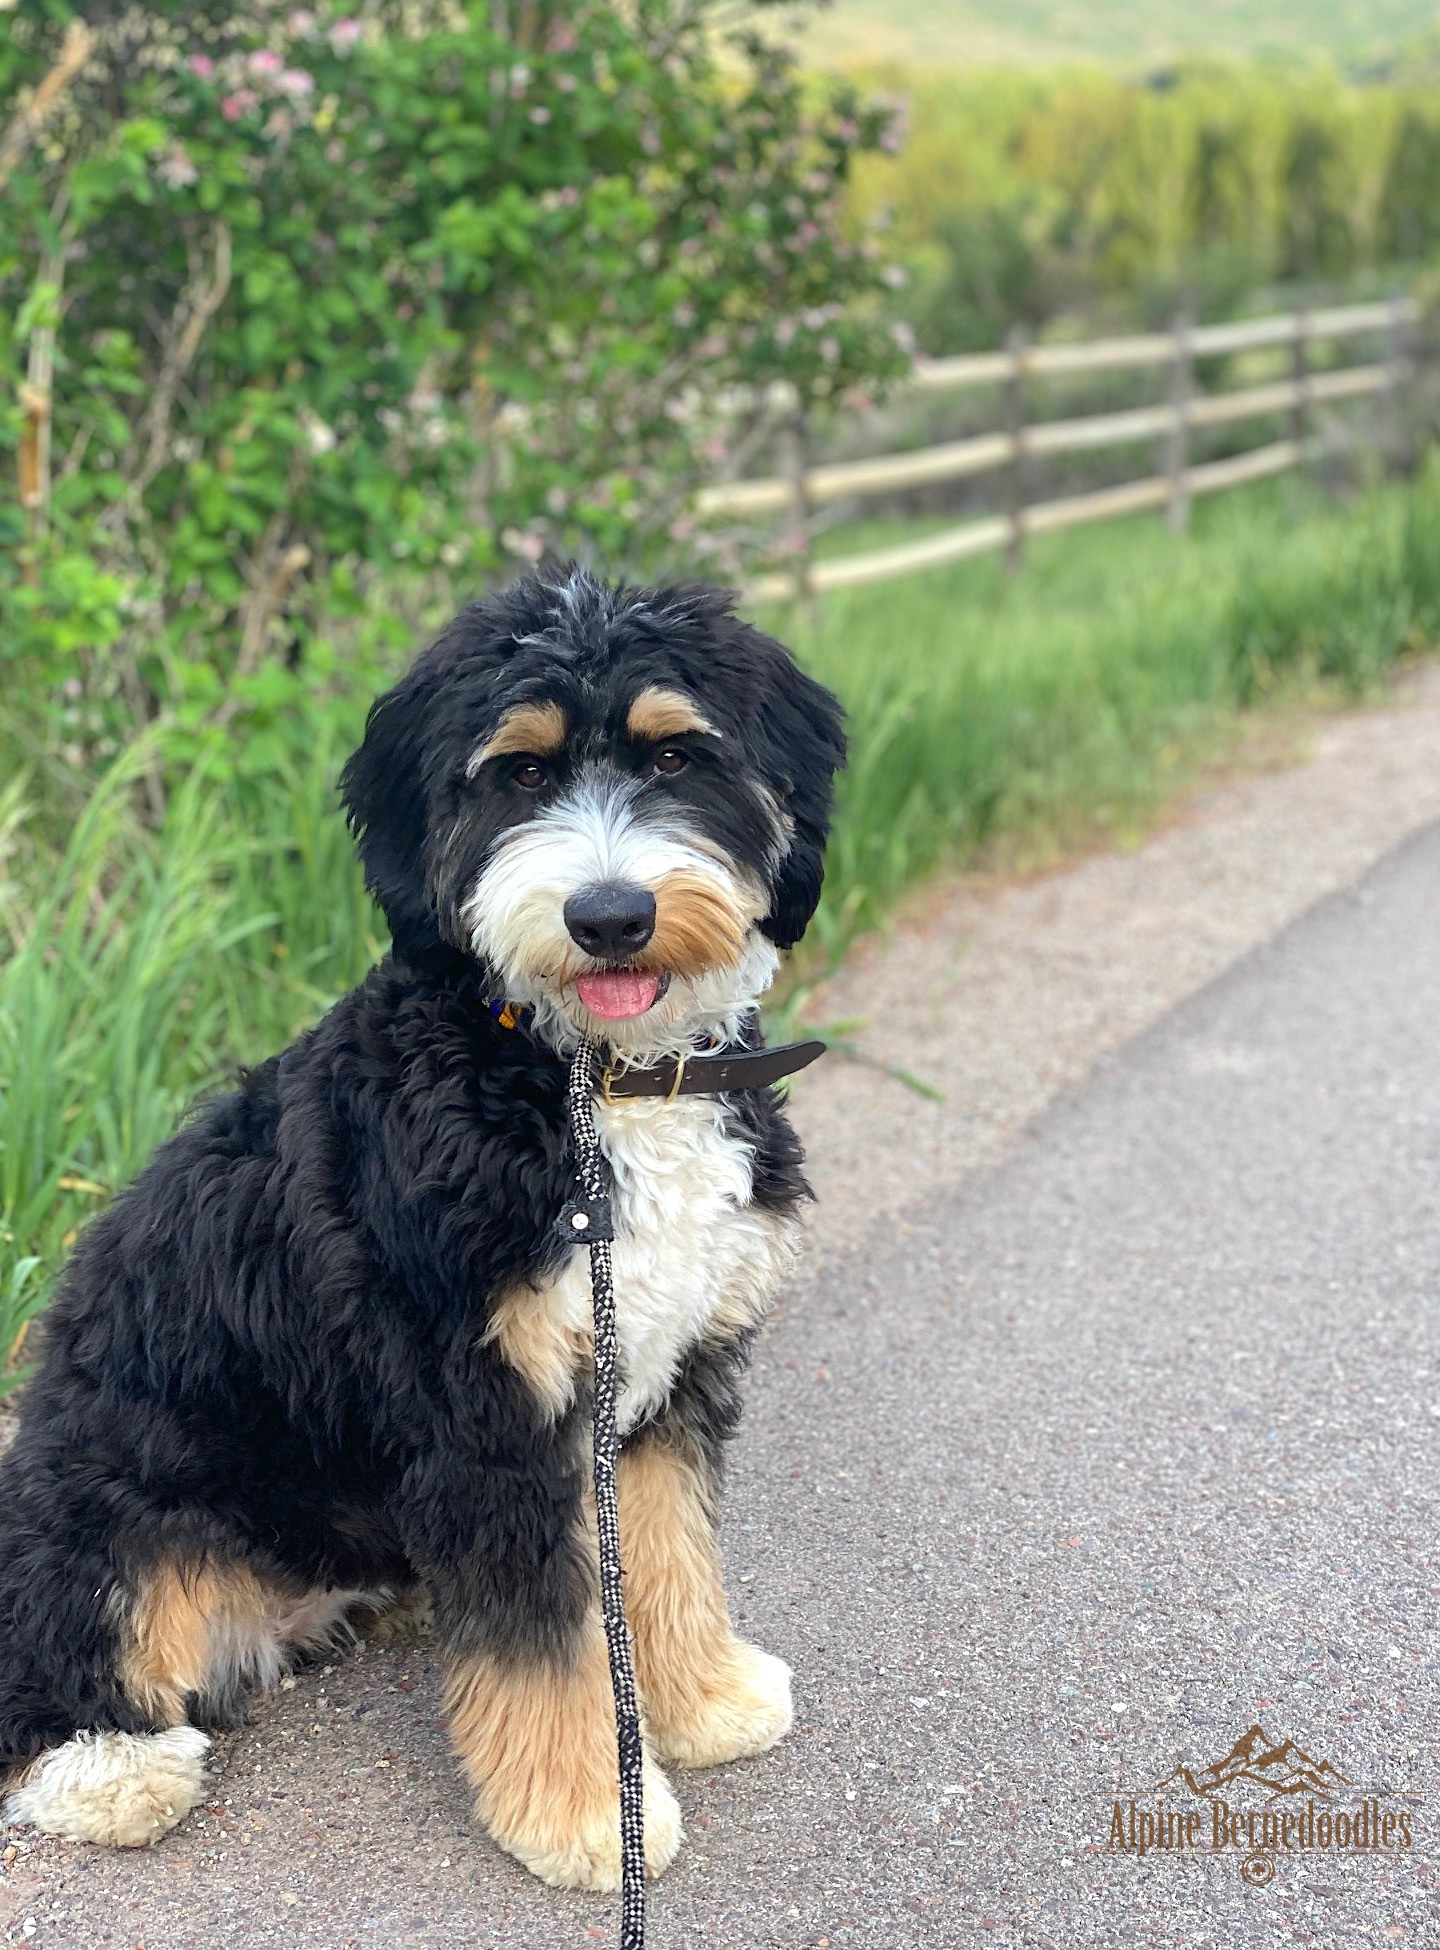 Lucy going for a walk